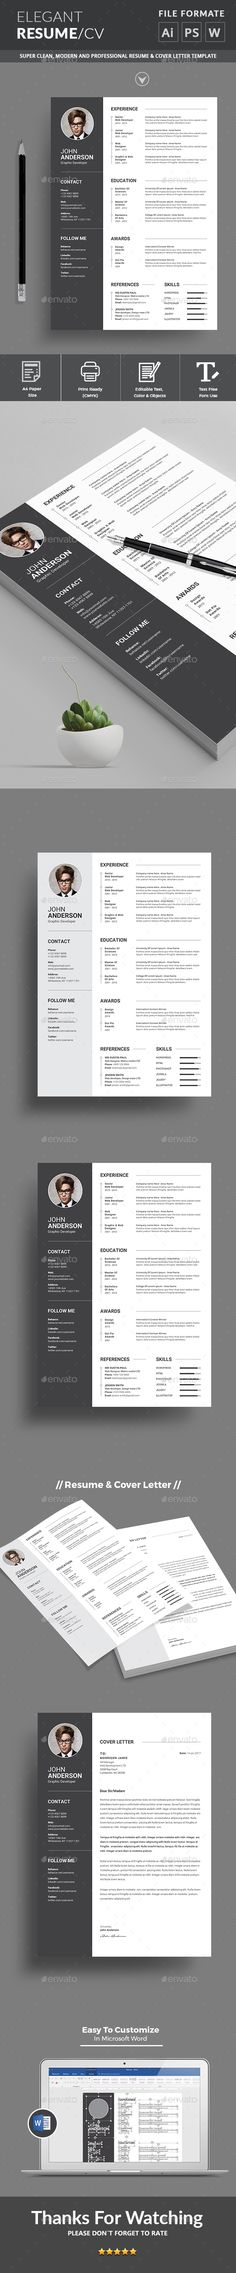 Resume Free Download Word Resume  Resume Cv Cv Template And Graphics Basic Resume Format Word with Writers Resume Resume Resume Services Nyc Word